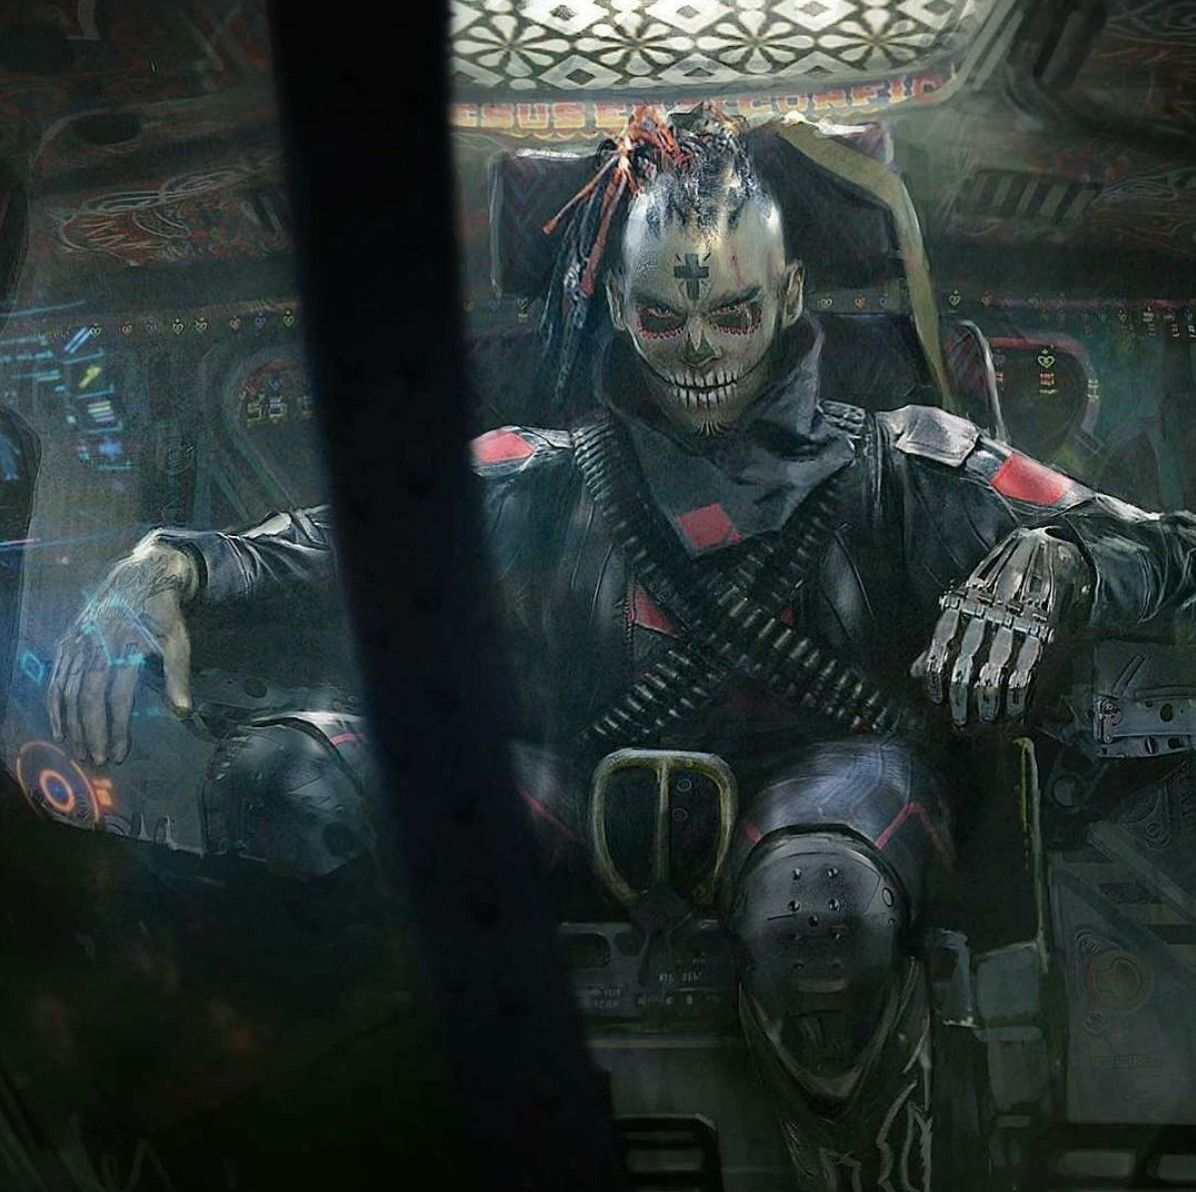 Beyond Good And Evil 2 Mexican Pirate Concept Art Concept Art Sci Fi Concept Art Cyberpunk Art Beyond good and evil 2 spaceship